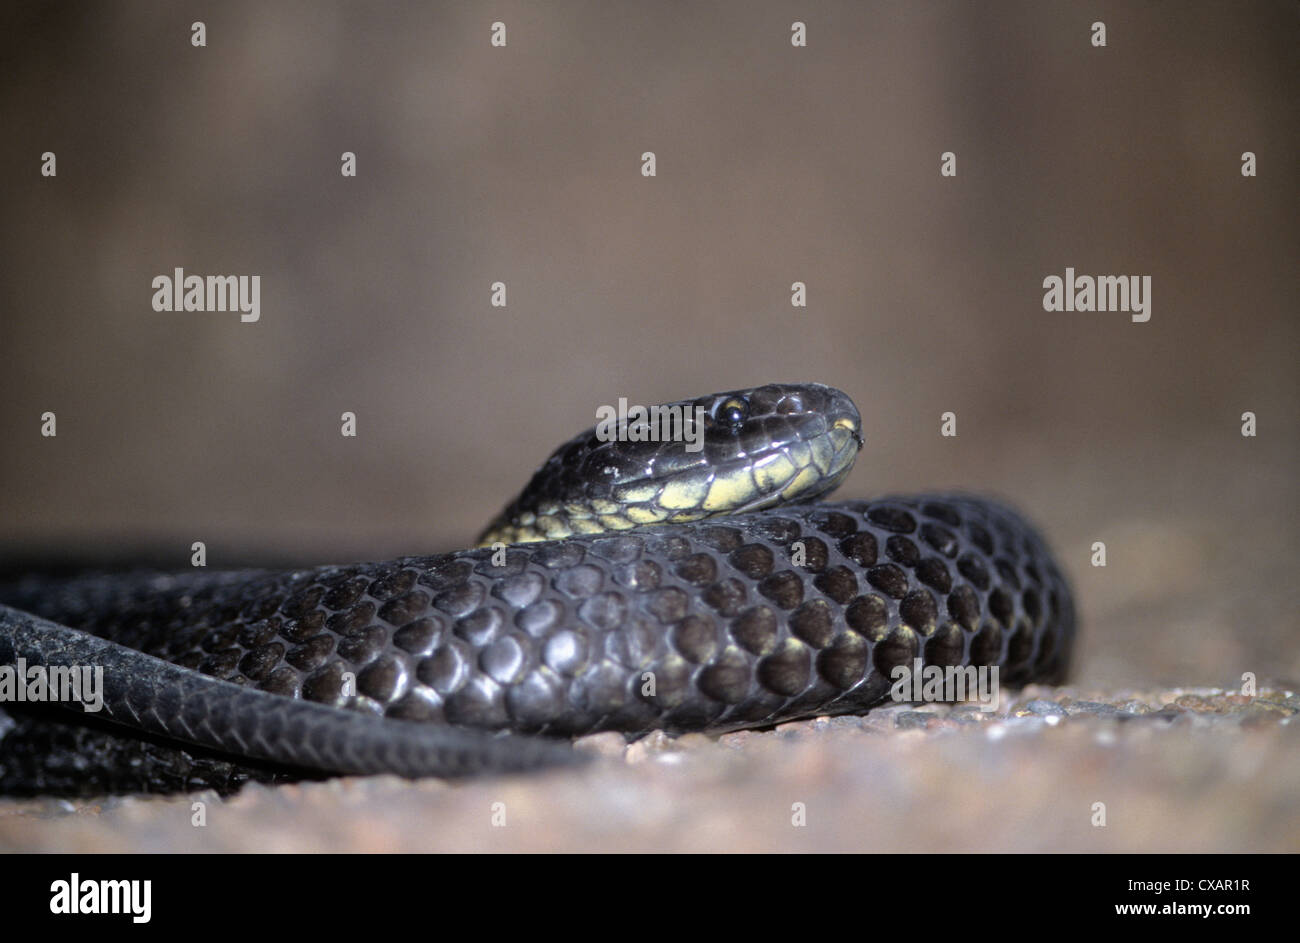 Australia, wildlife, native snakes,Chapell Island Tiger Snake, the worlds most venemous snake in terms of venon - Stock Image